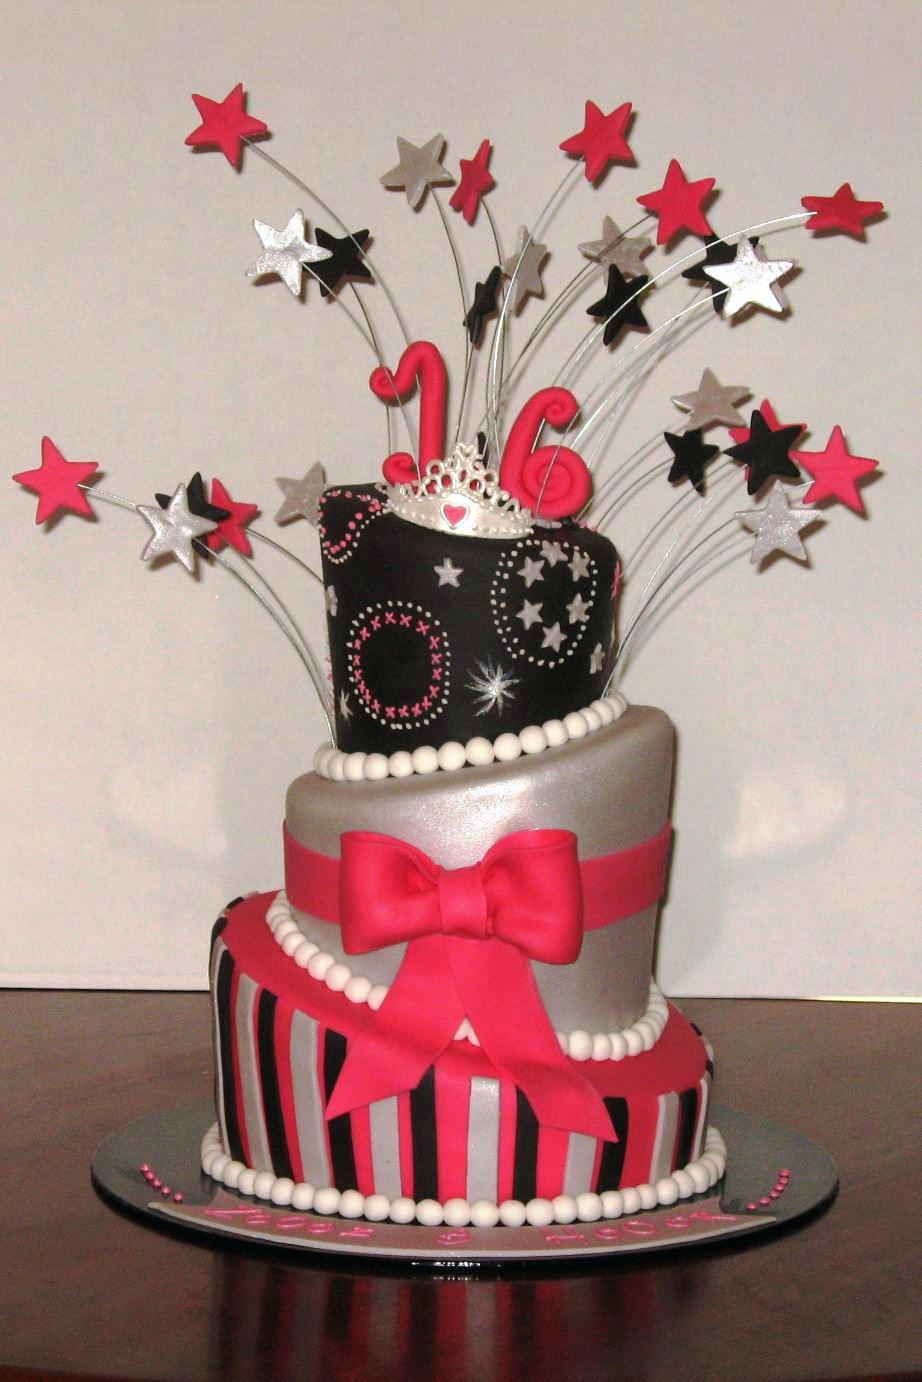 color combinations for birthday cakes ; fascinating-16th-birthday-cakes-birthday-cakes-birthday-cakes-for-girls-black-and-silver-color-combination-with-red-color-16th-birthday-cakes-online